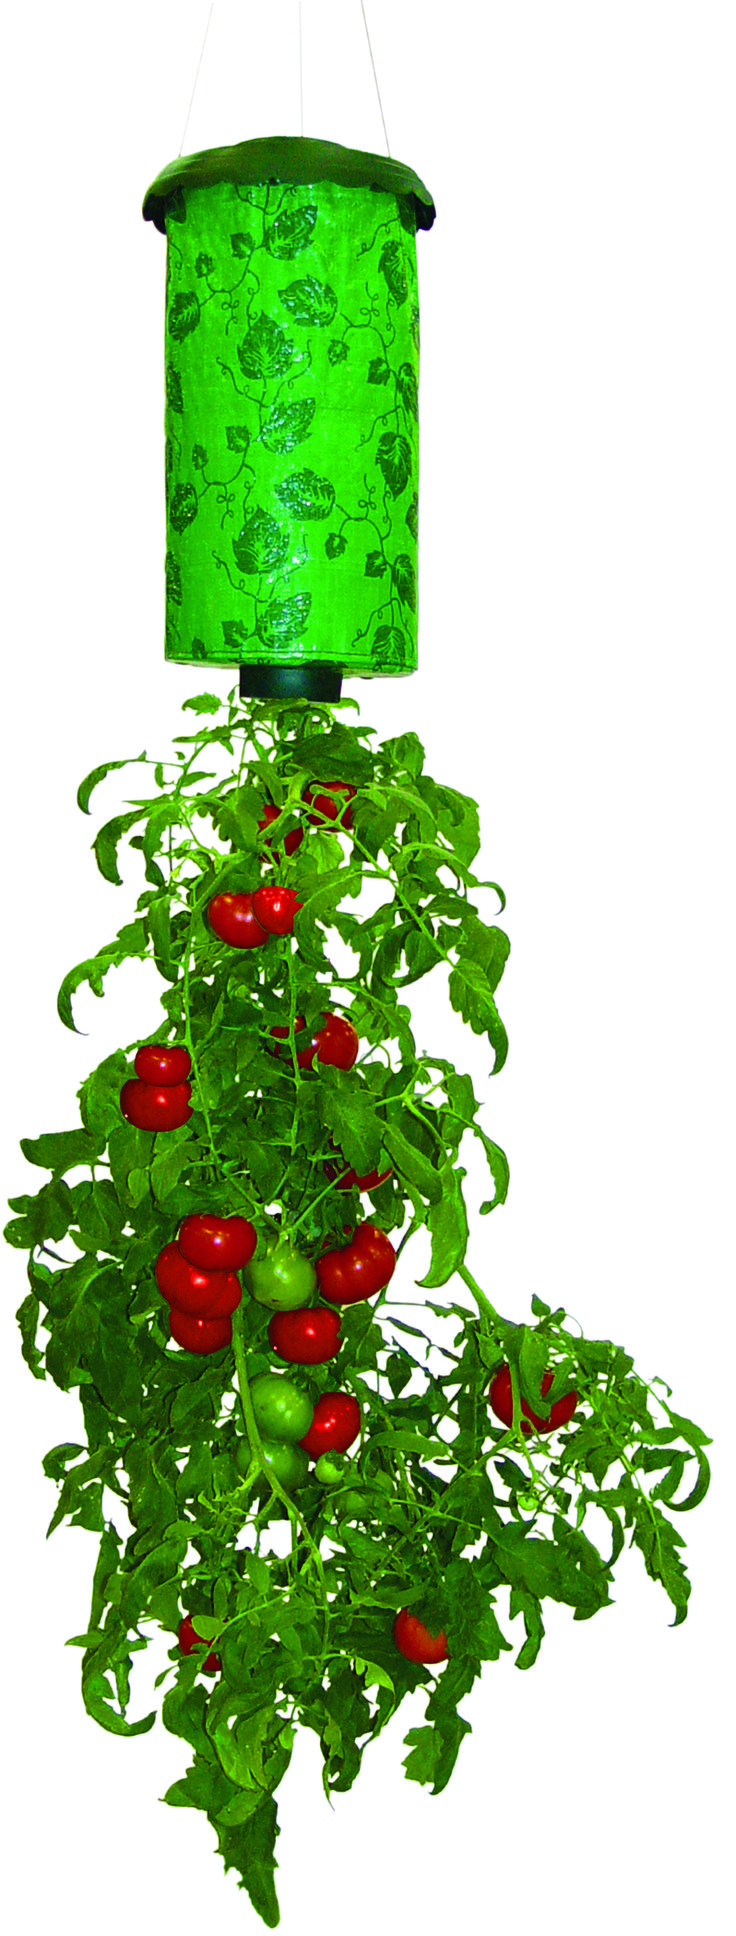 Spread the Love of Growing with the upside-down #strawberry planter. - 43 Best Images About Upside Down On Pinterest Revolutions